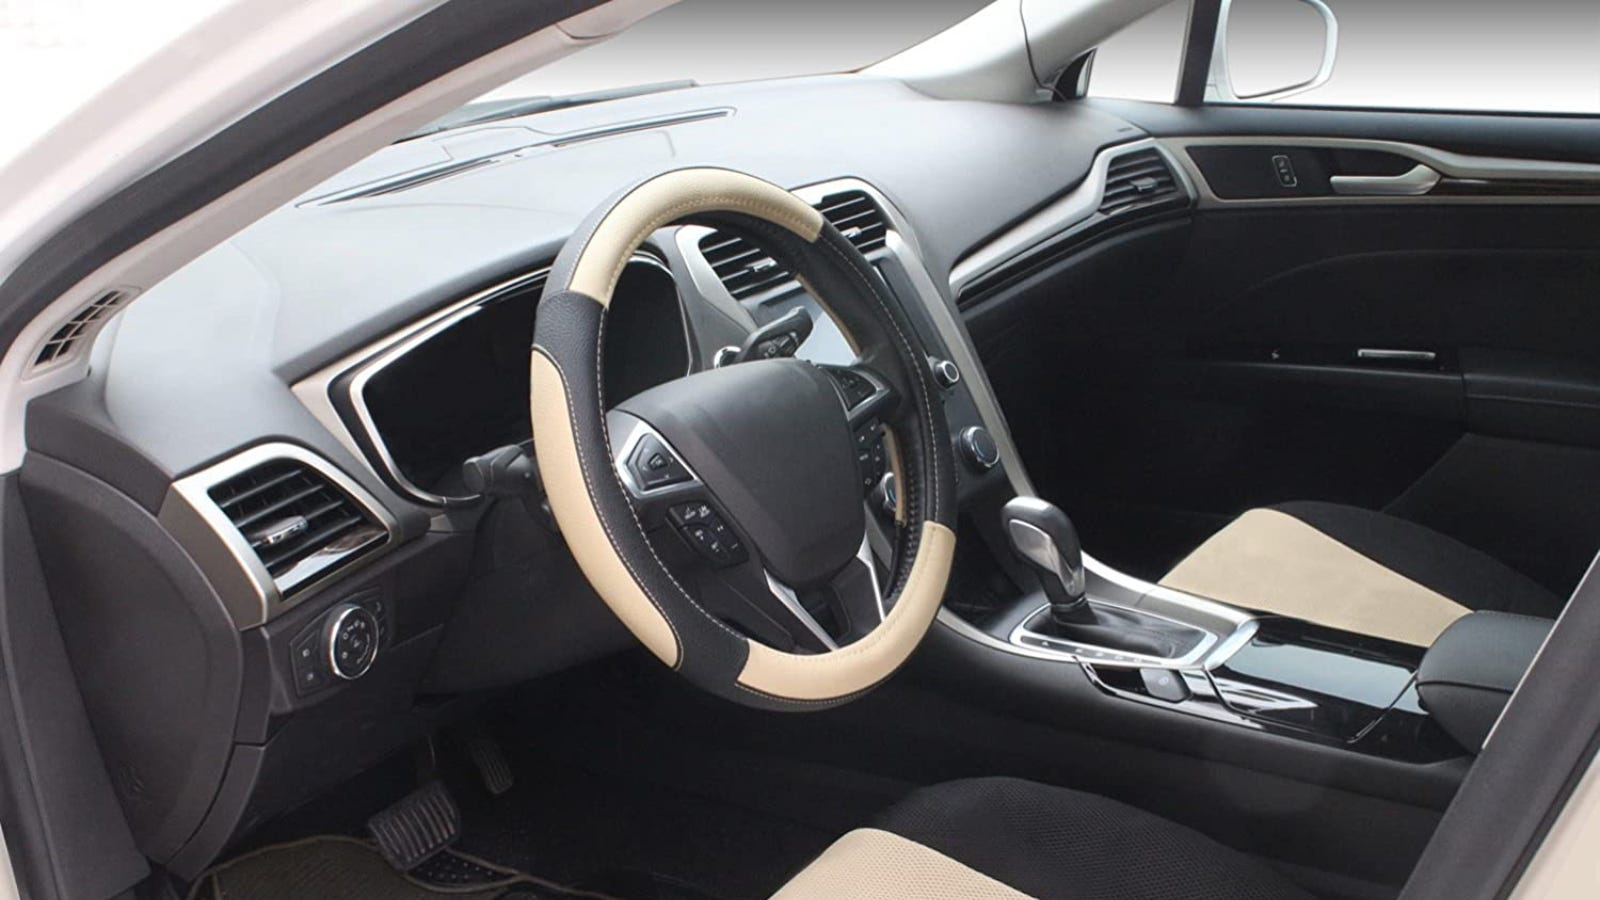 The front interior of a car and the steering wheel has a black and beige cover on it.